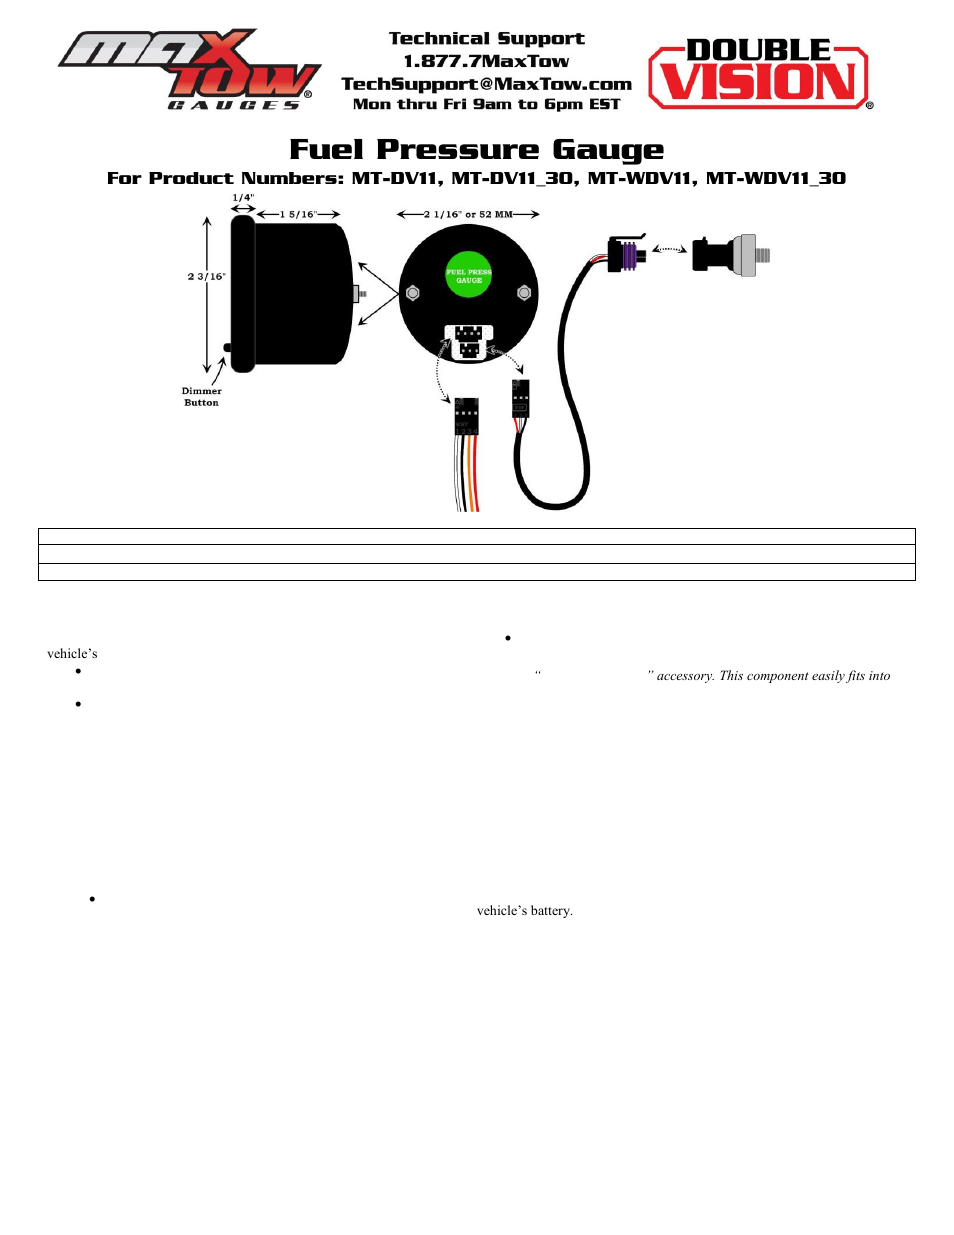 Glowshift Maxtow Series Fuel Pressure Gauge User Manual